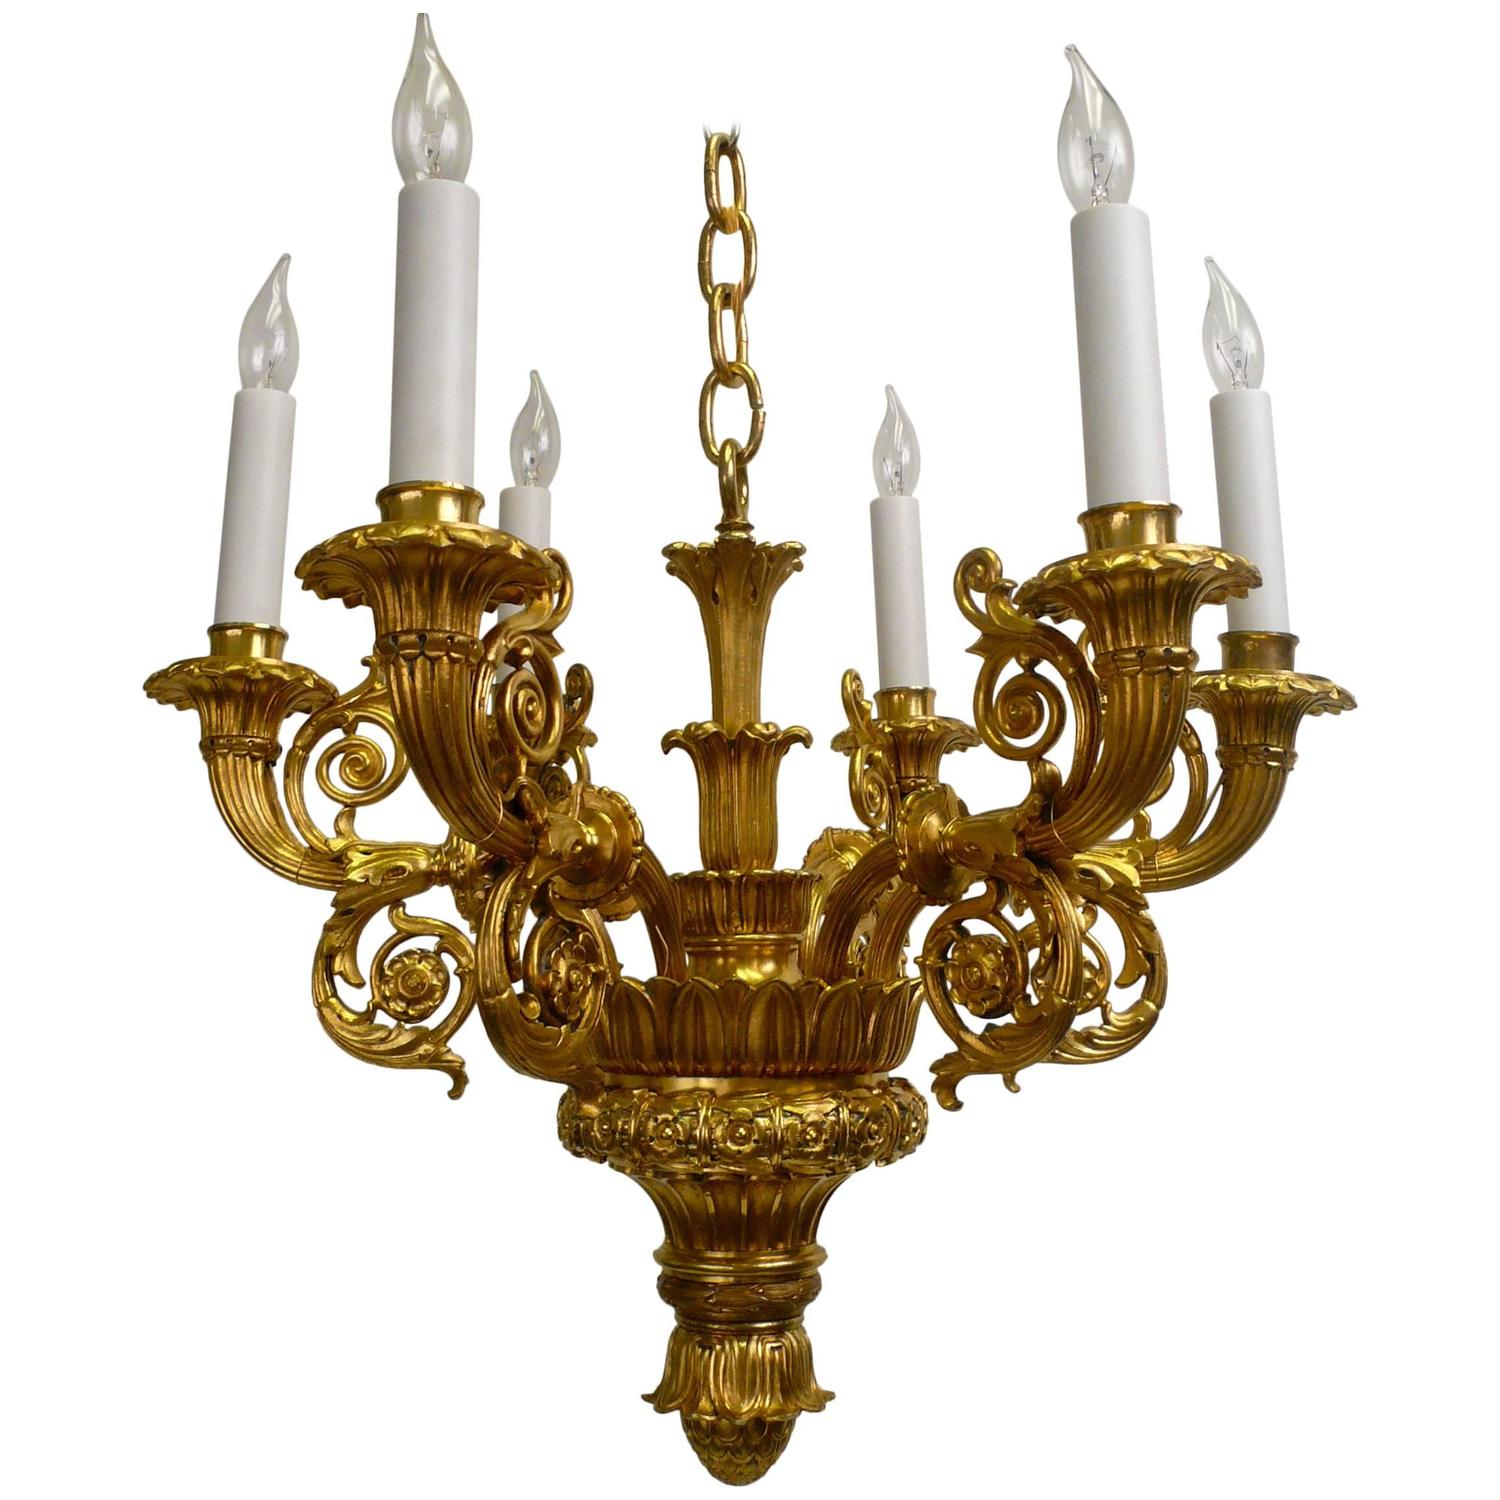 19th Century French Empire Style Six Light Gilt Bronze